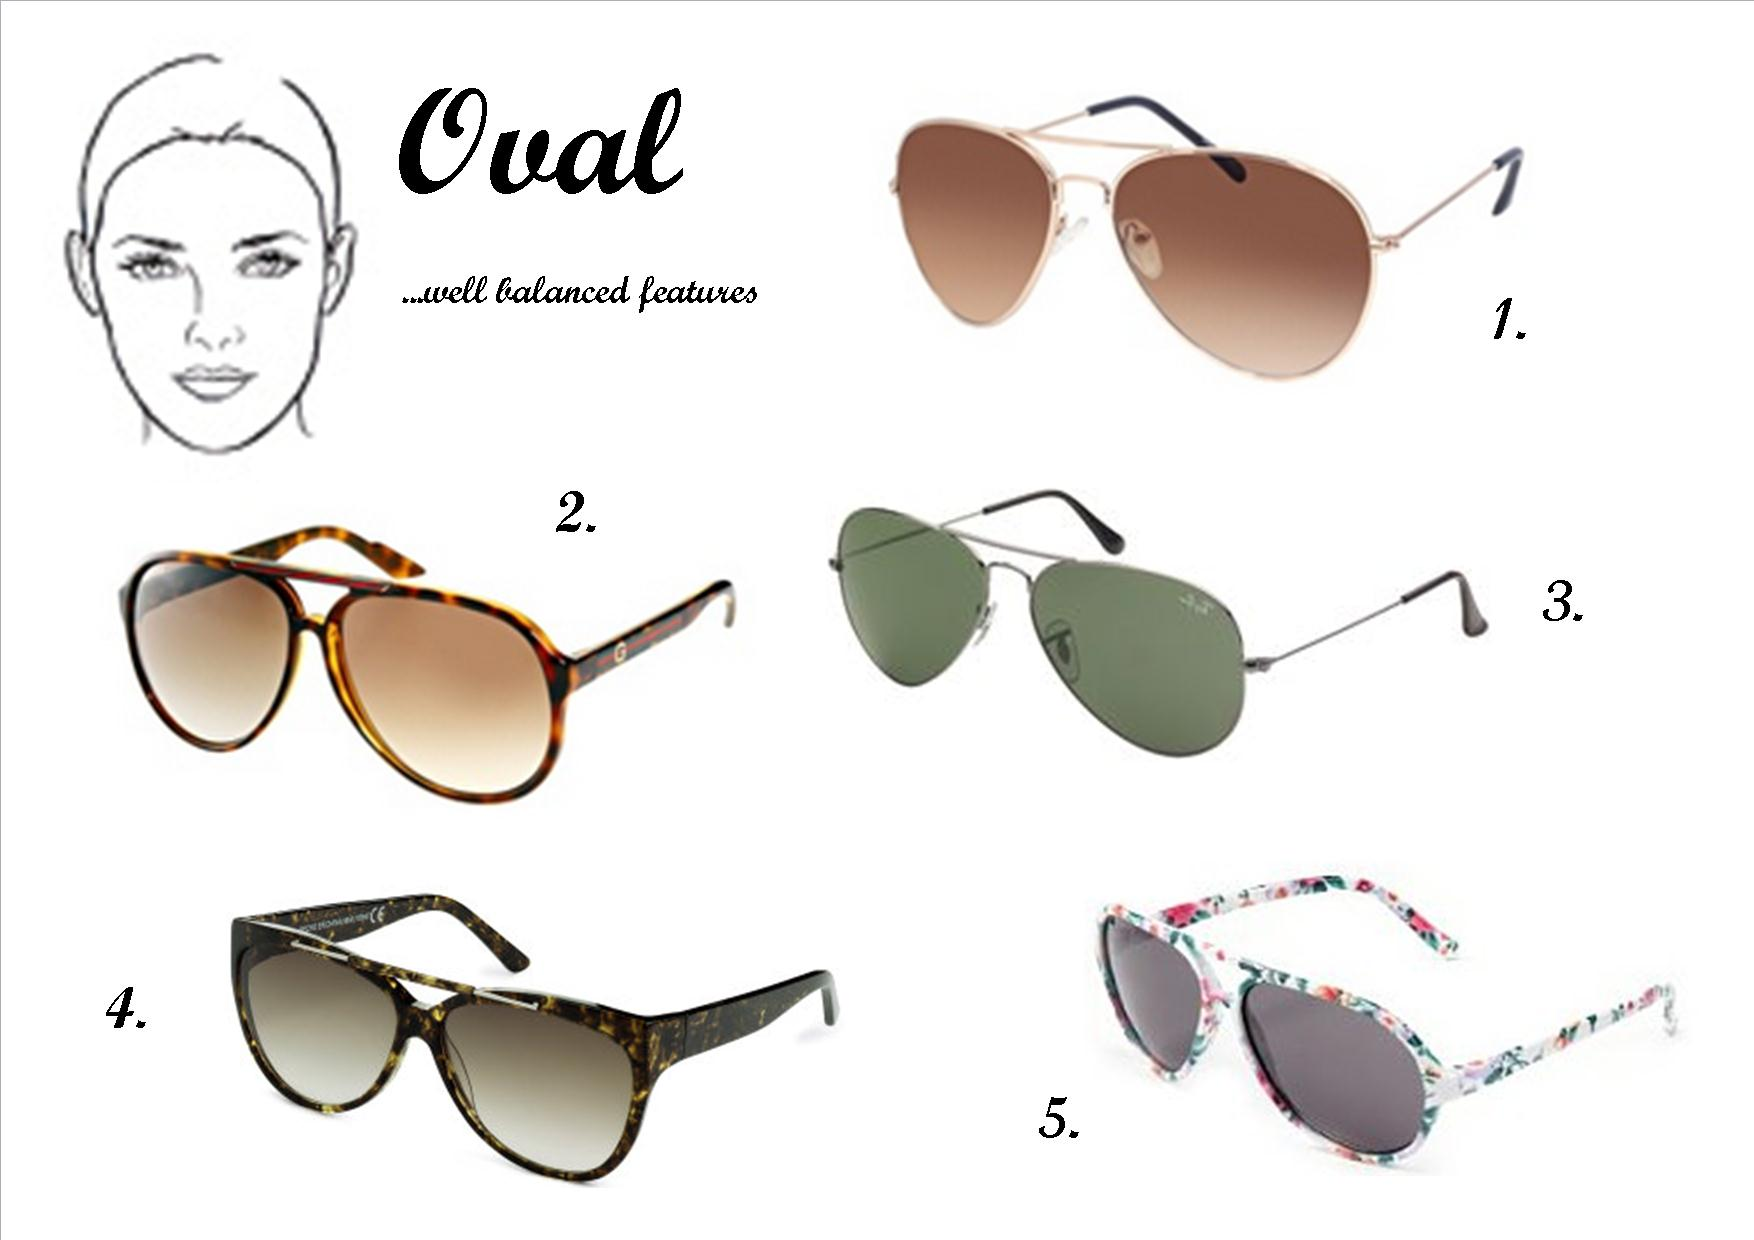 dd5d105fe7 Best Sunglasses for Oval Faces